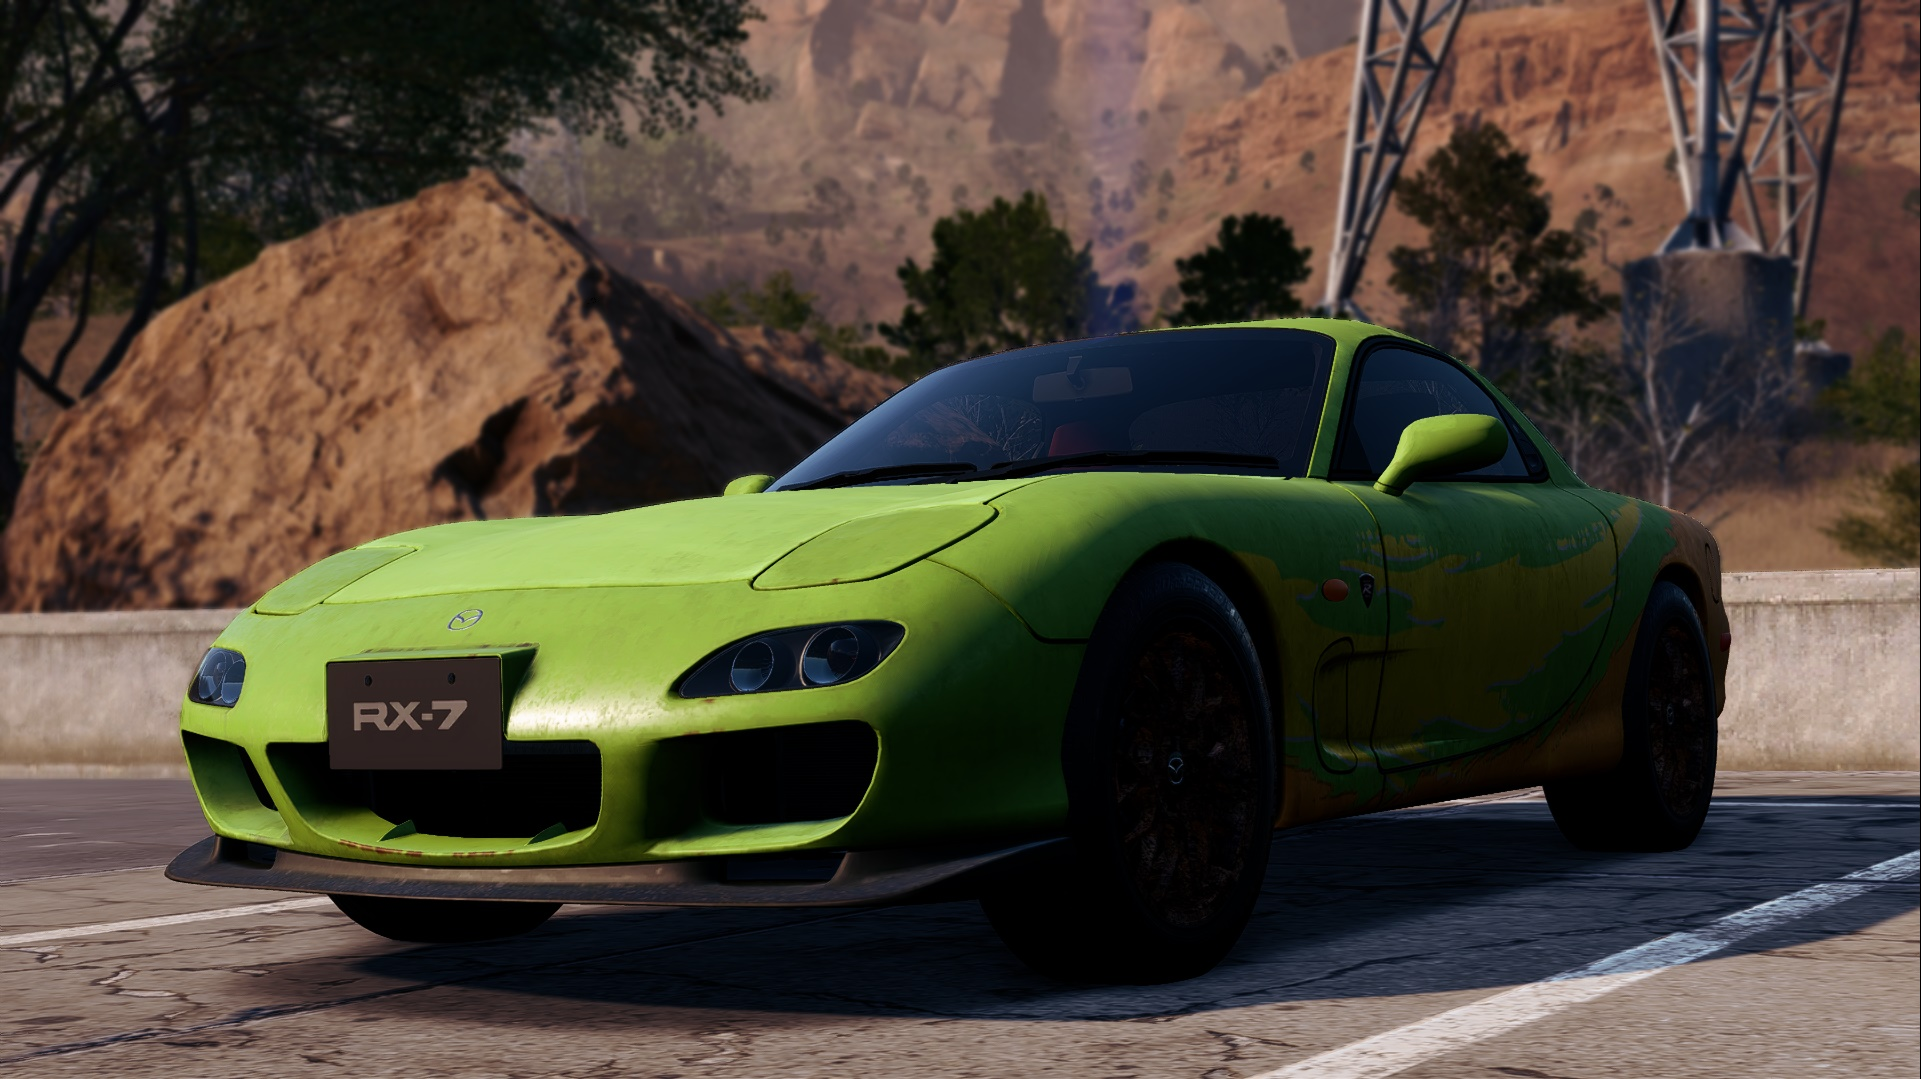 Need For Speed Payback Abandoned Cars Location Guide Mazda Rx7